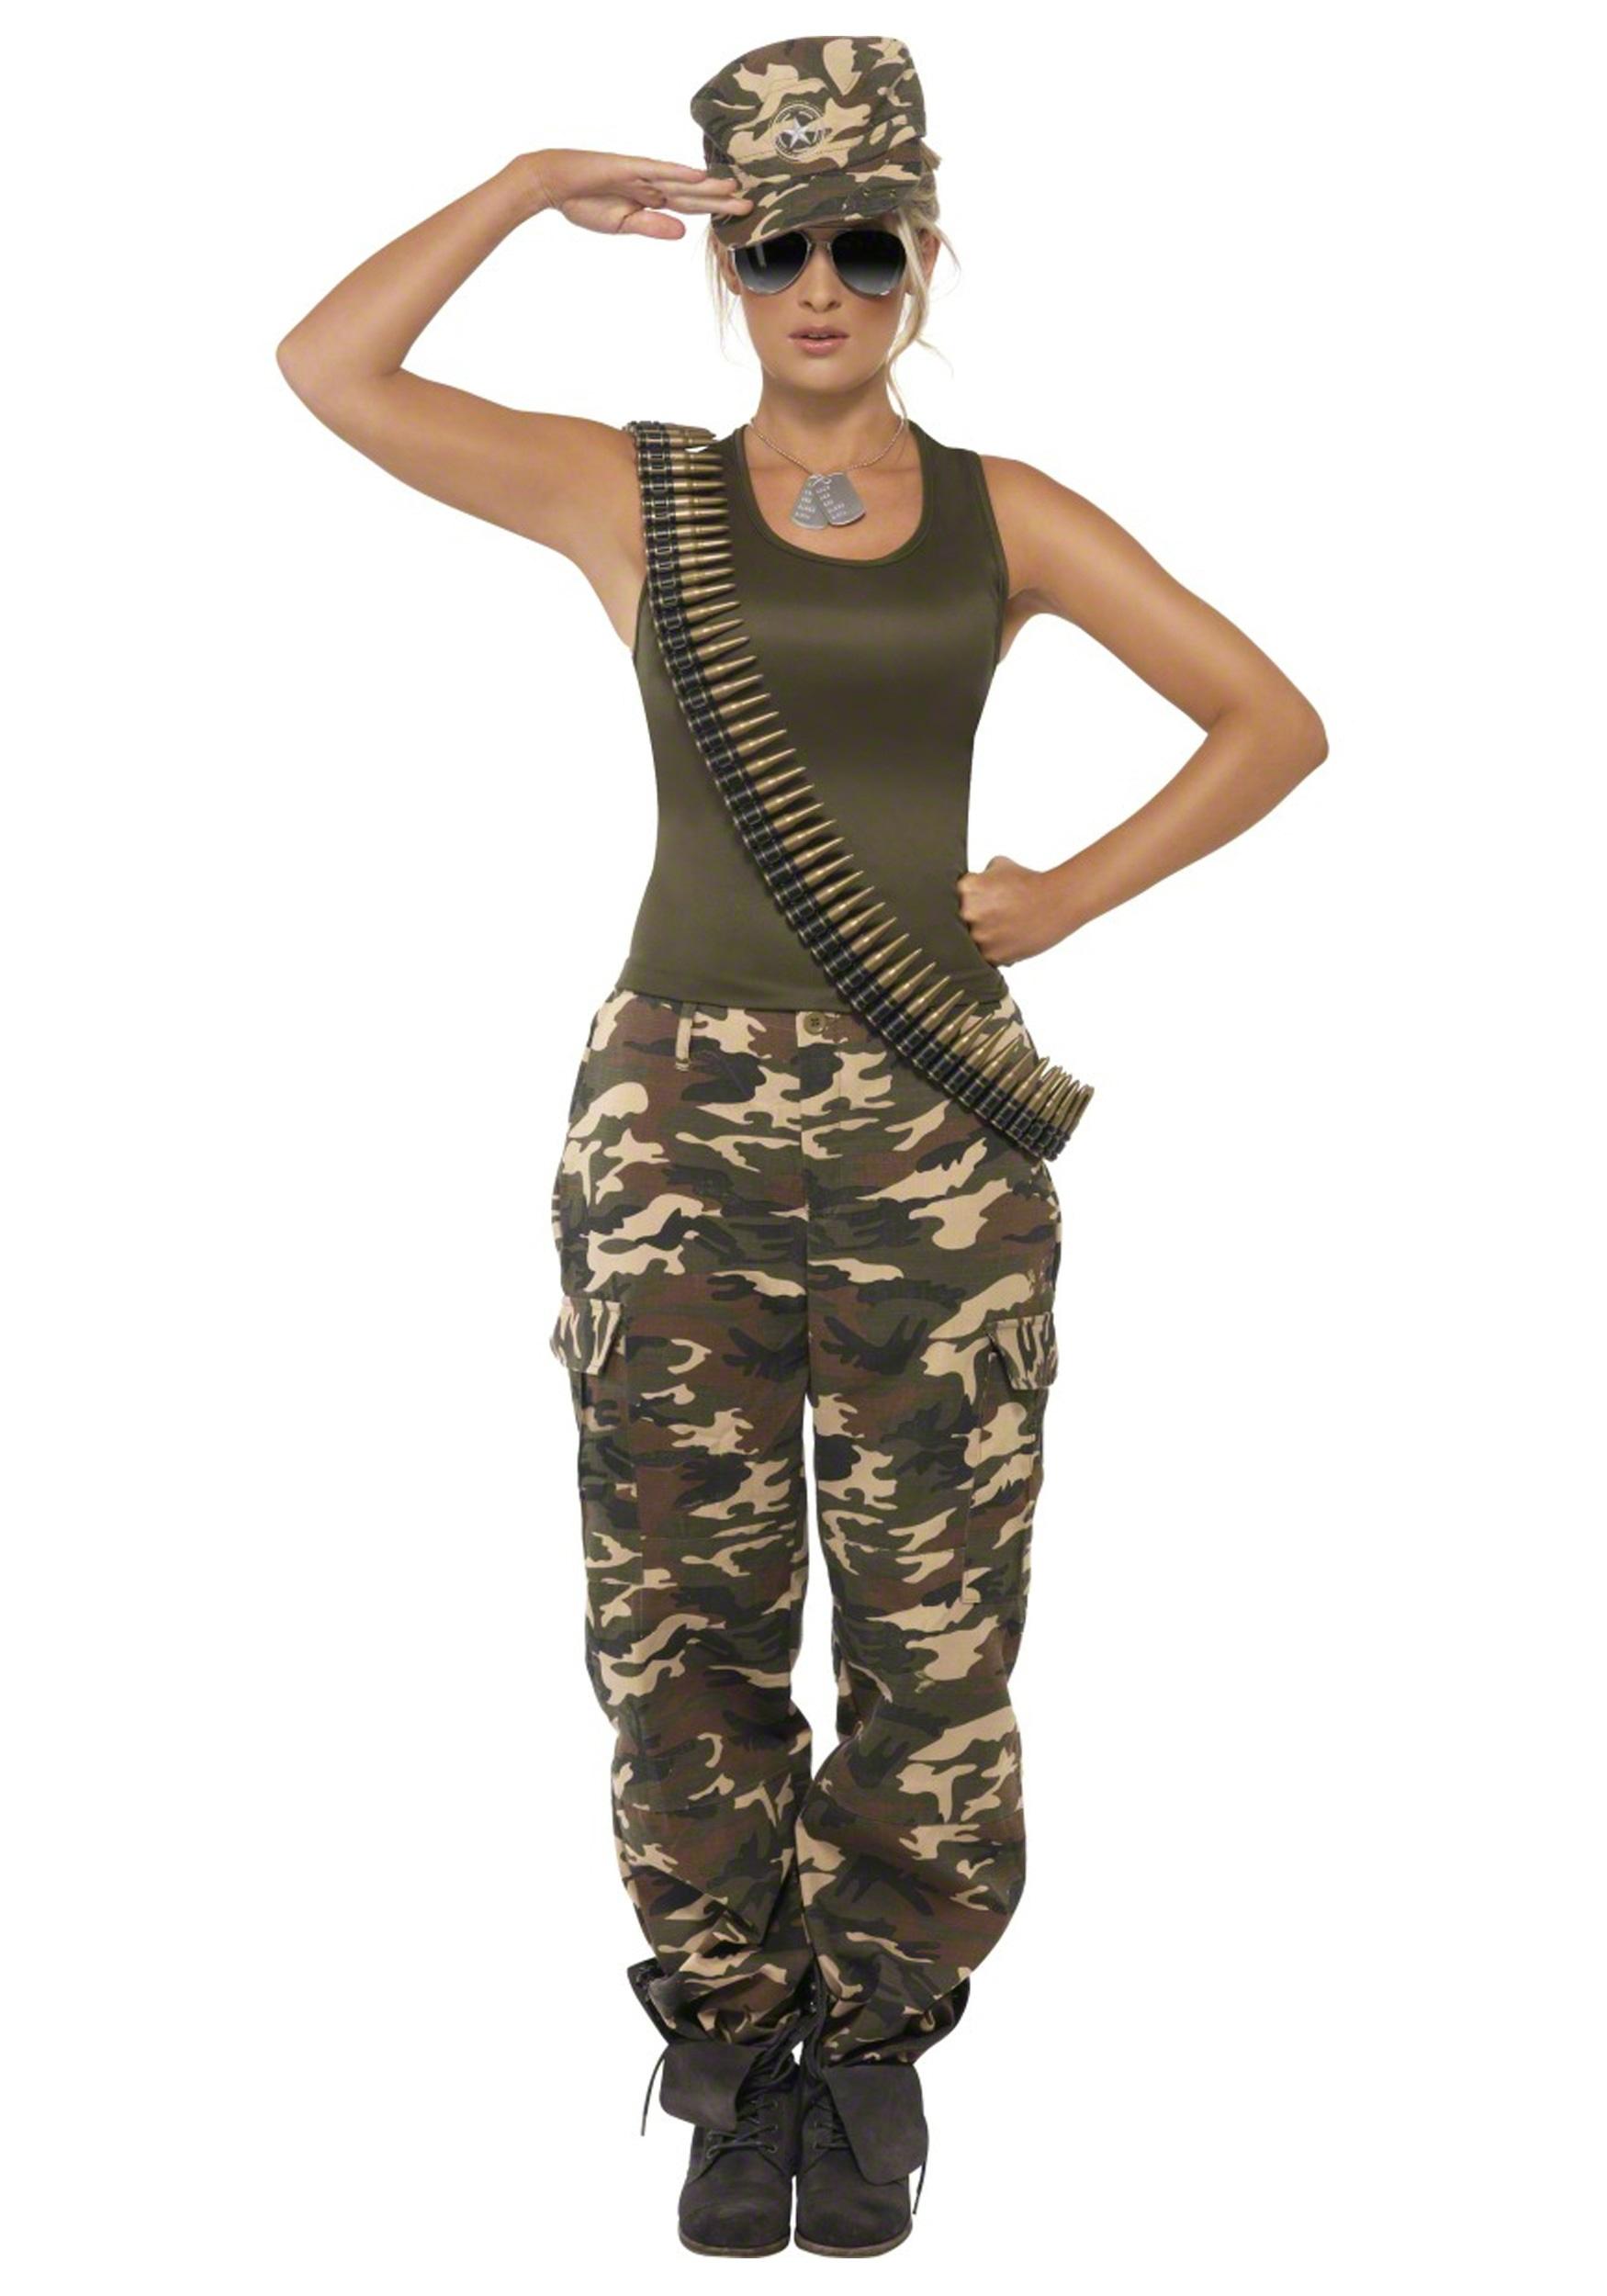 Womens Camouflage Clothing Active Wear - InfoBarrel